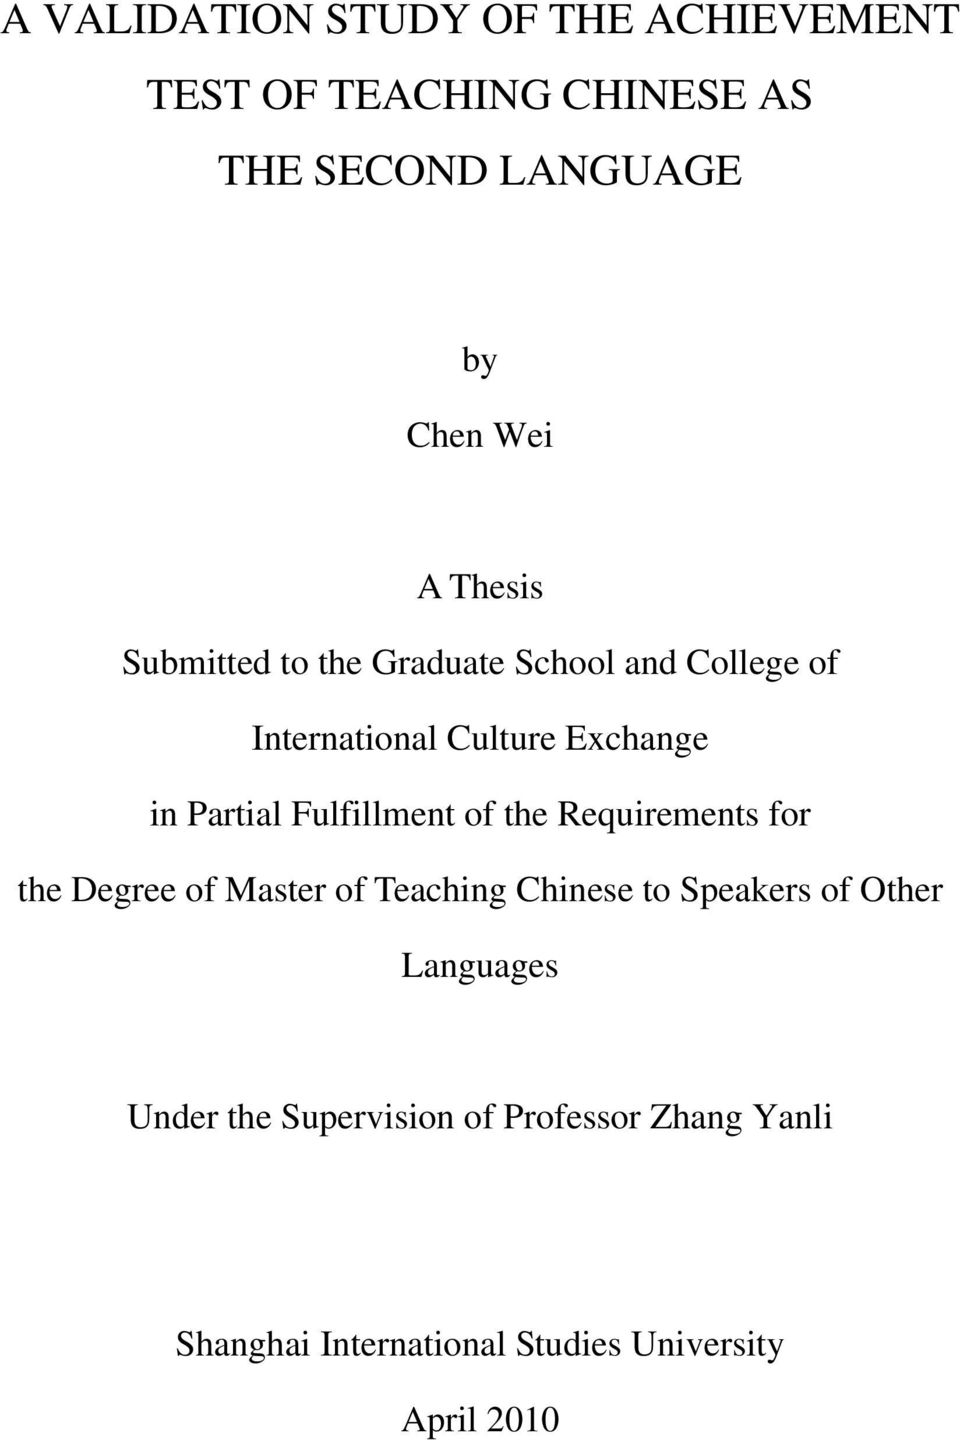 Fulfillment of the Requirements for the Degree of Master of Teaching Chinese to Speakers of Other